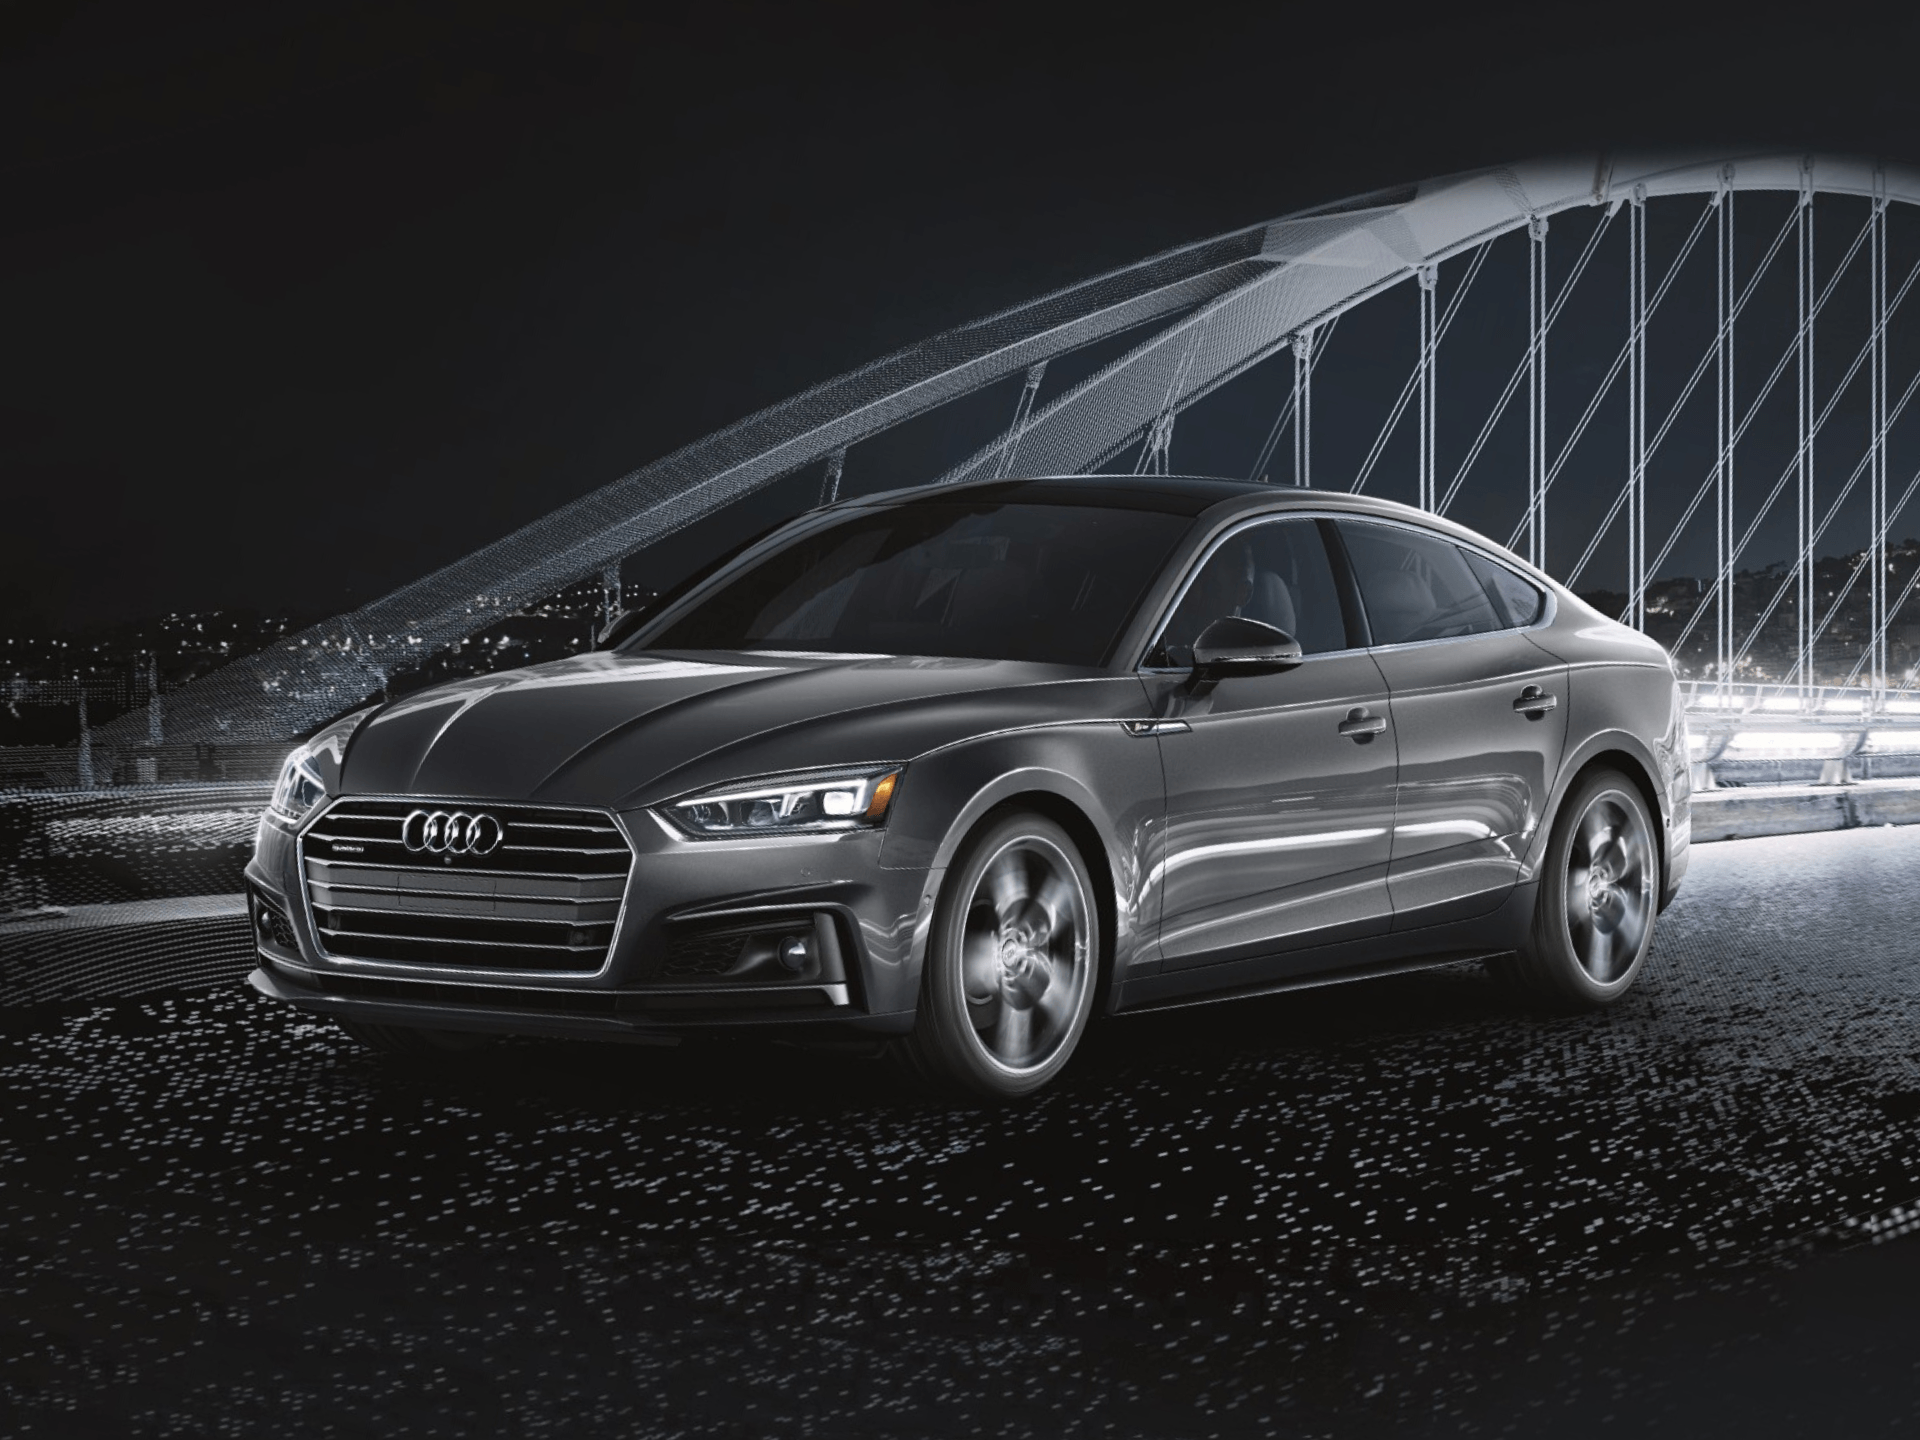 Lease a 2019 A5 Sportback from $214 bi-weekly*